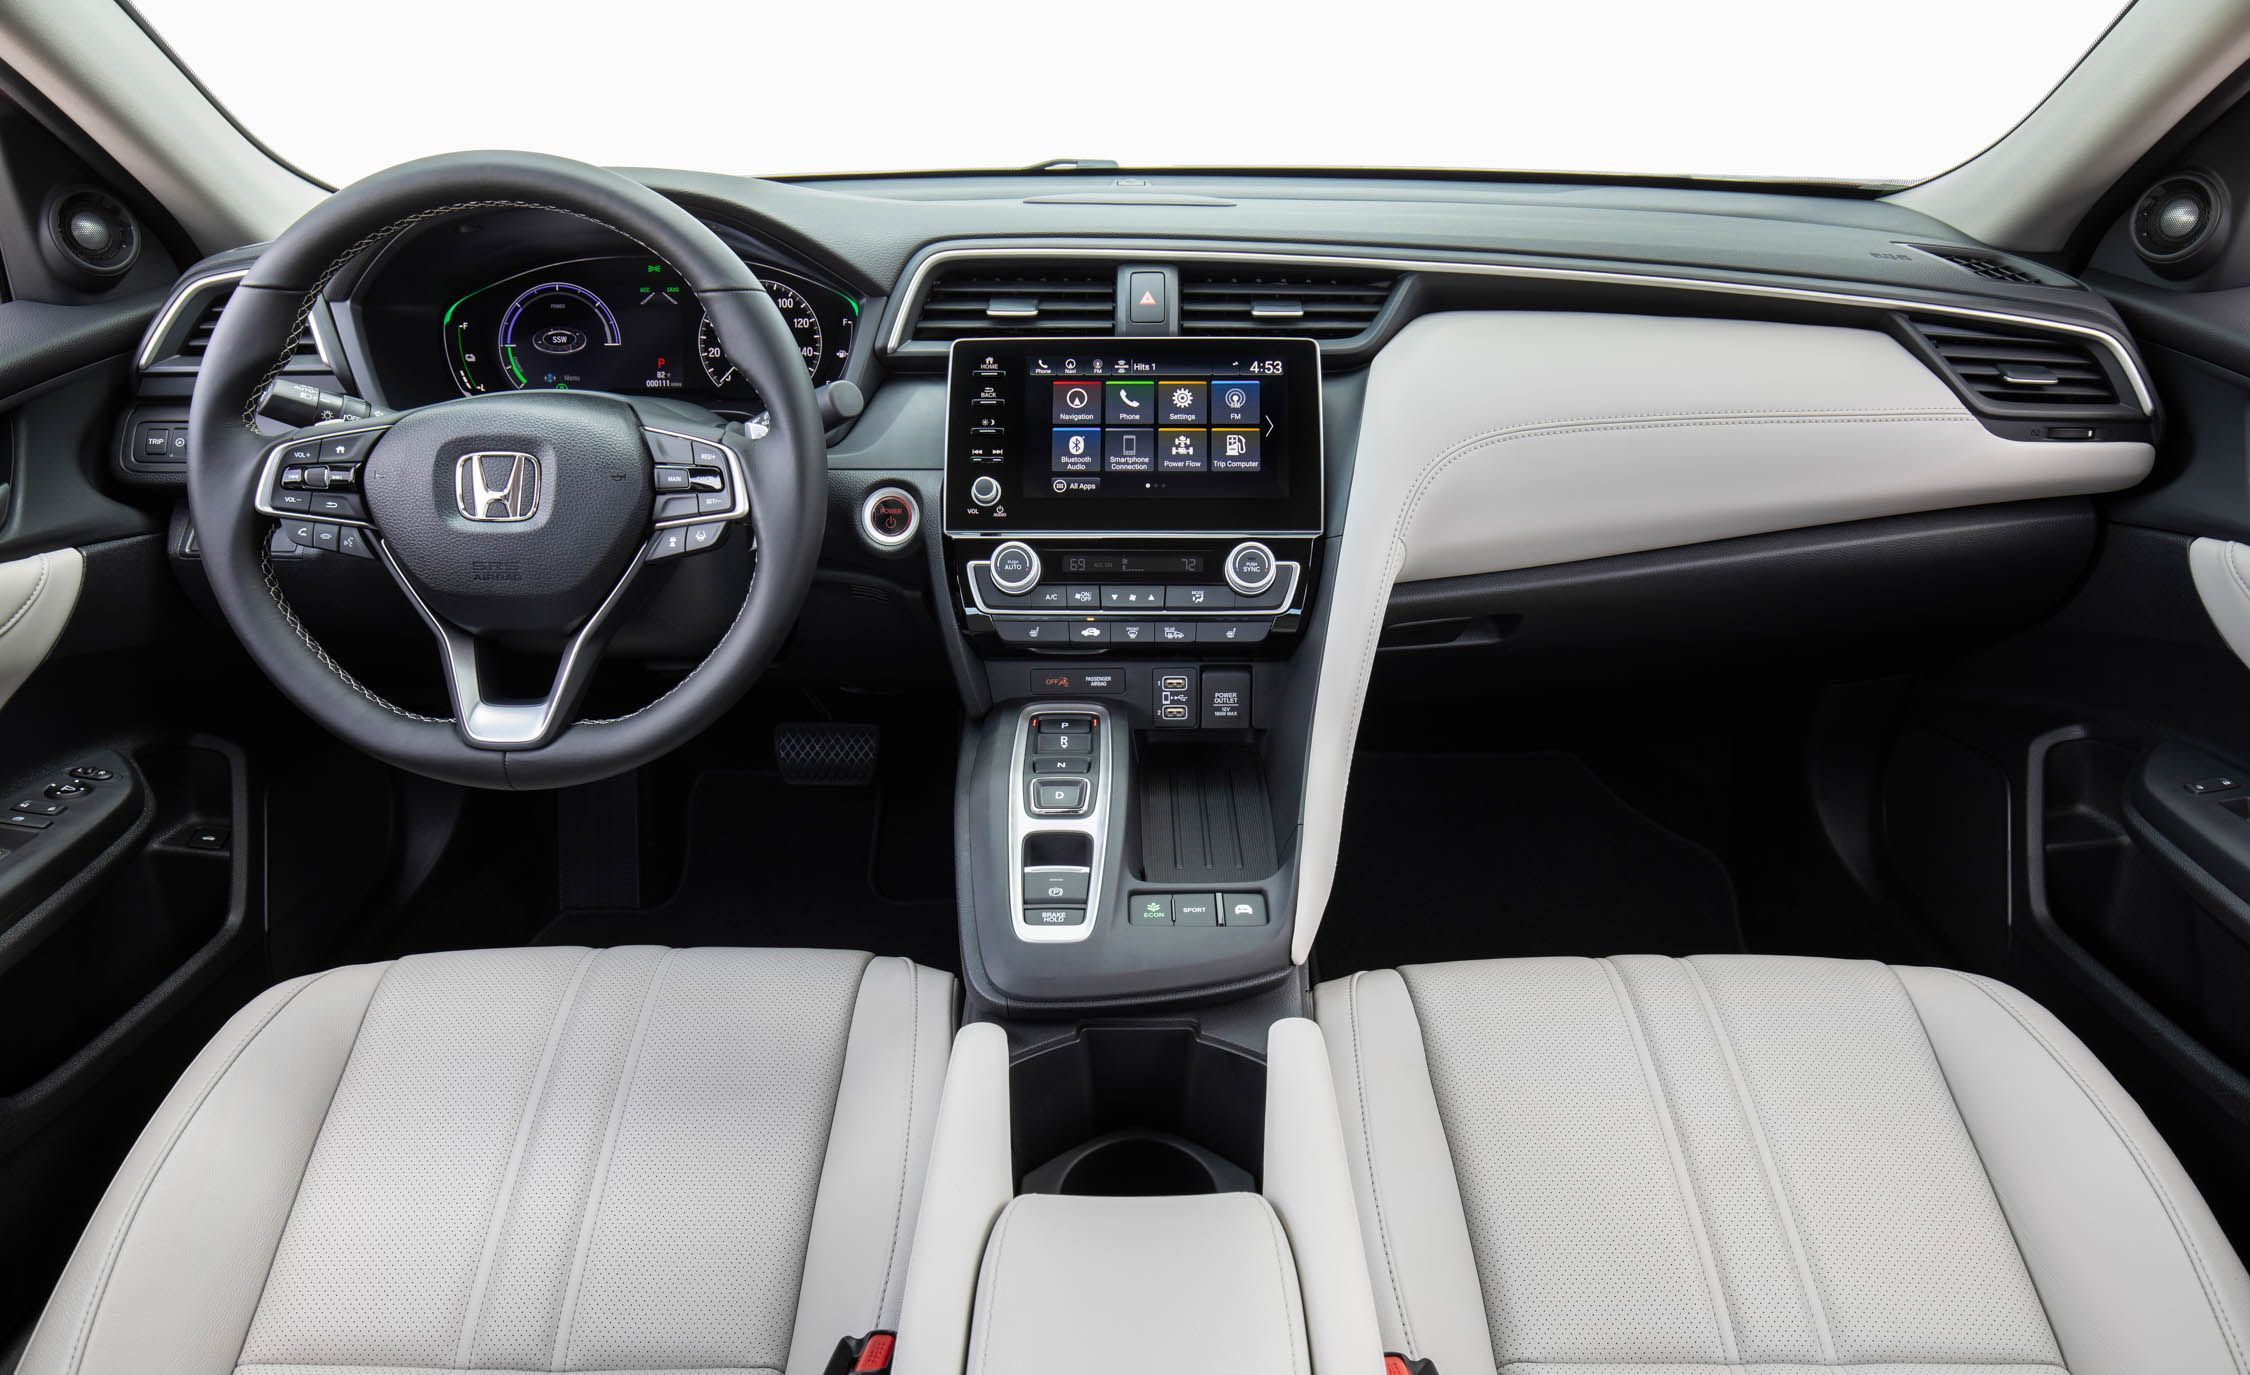 2021 Honda Accord Sport Interior Concept Release Date Price Honda Insight Honda Accord Sport Honda Accord Touring